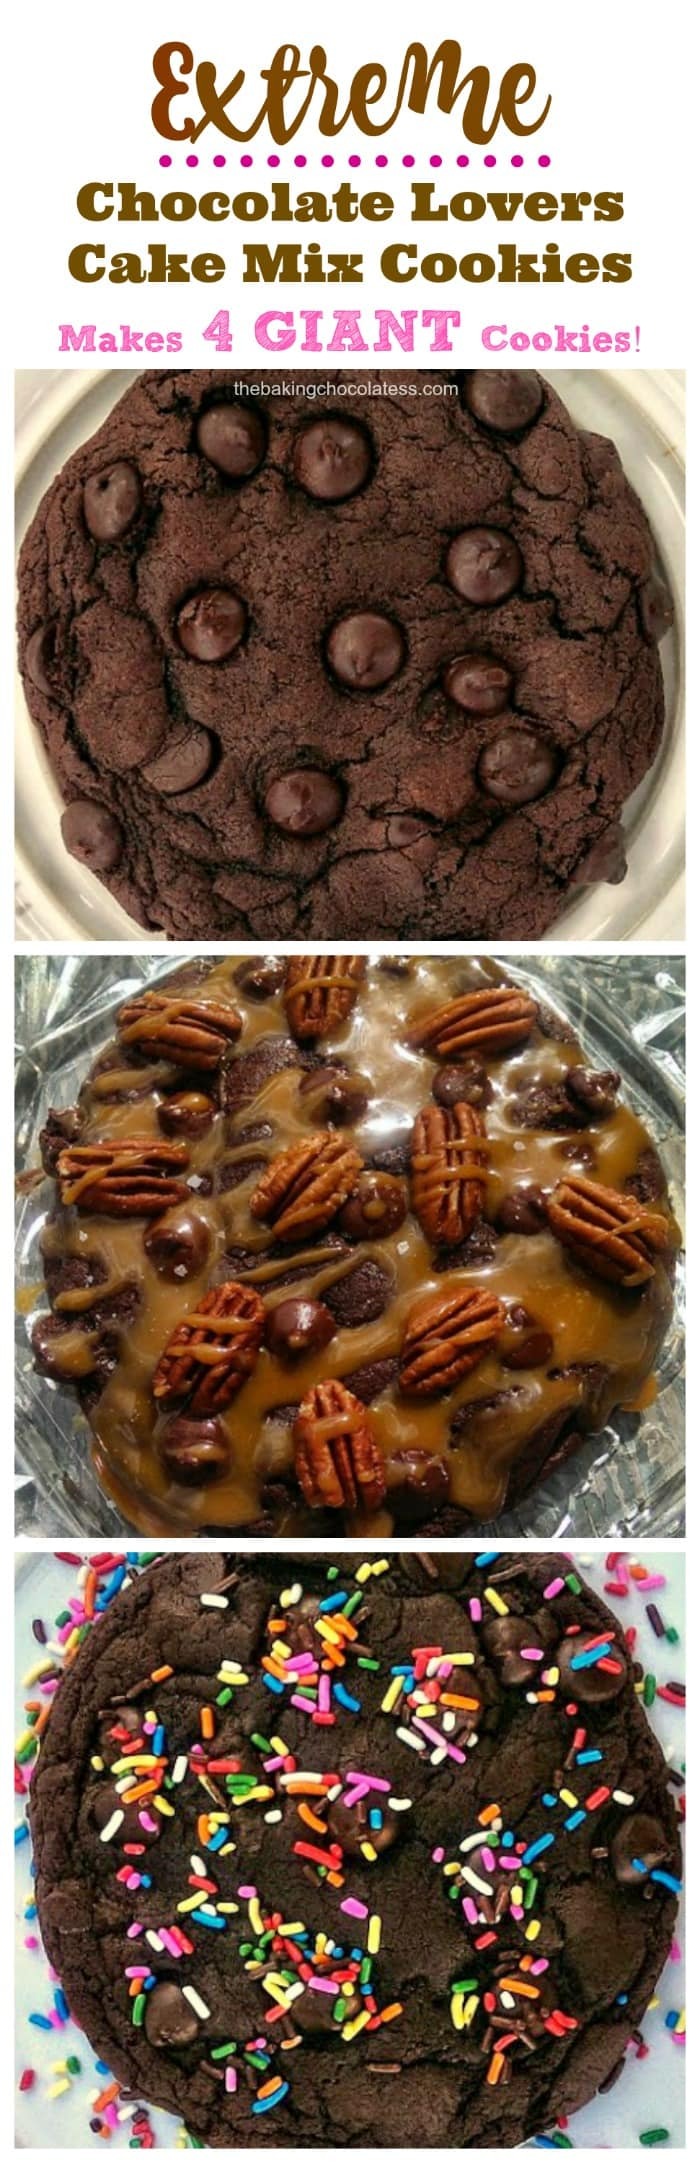 Extreme Chocolate Lovers Cake Mix Cookies {Recipe Makes 4 GIANT Cookies!}